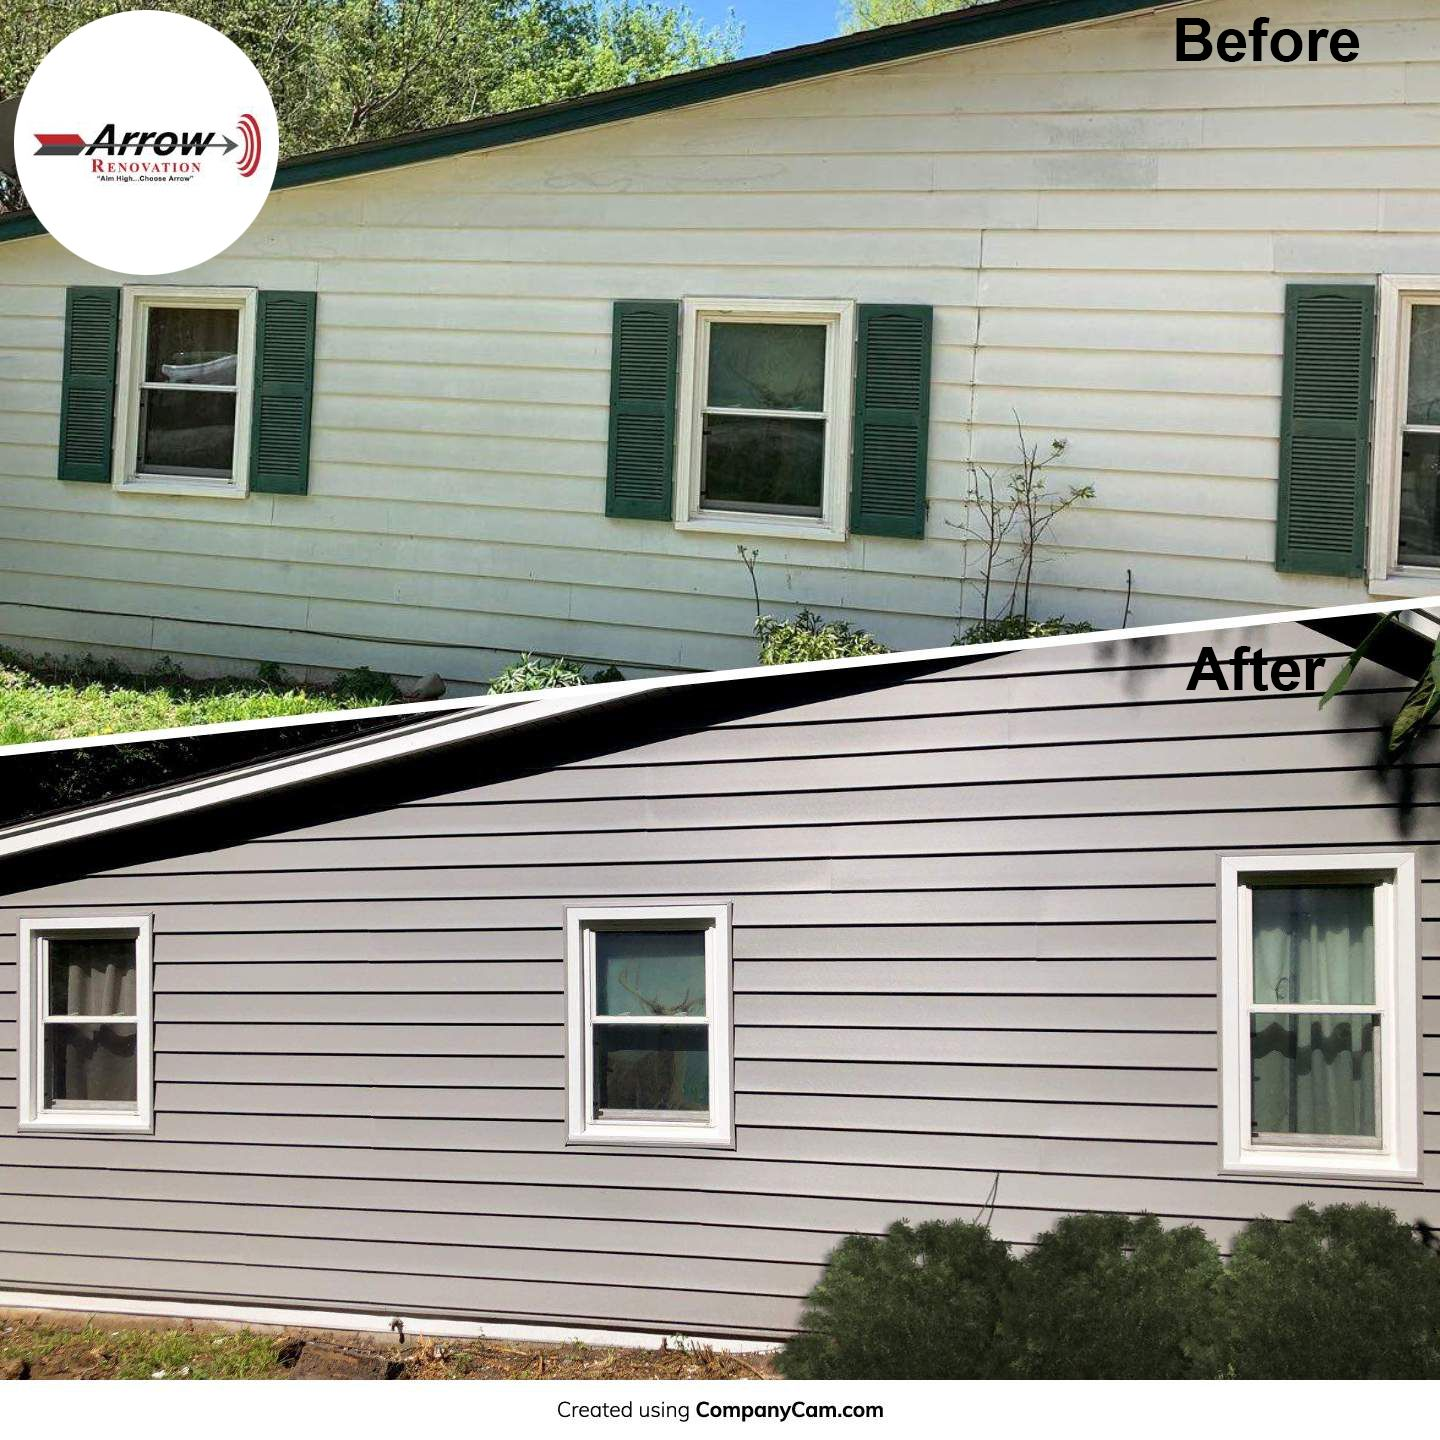 Craneboard Vinyl Siding Installed On Kansas City Mo Home Along With New Gutters Fascia And Soffit Let Arrow Help You Call Today Fo Vinyl Siding Home Siding